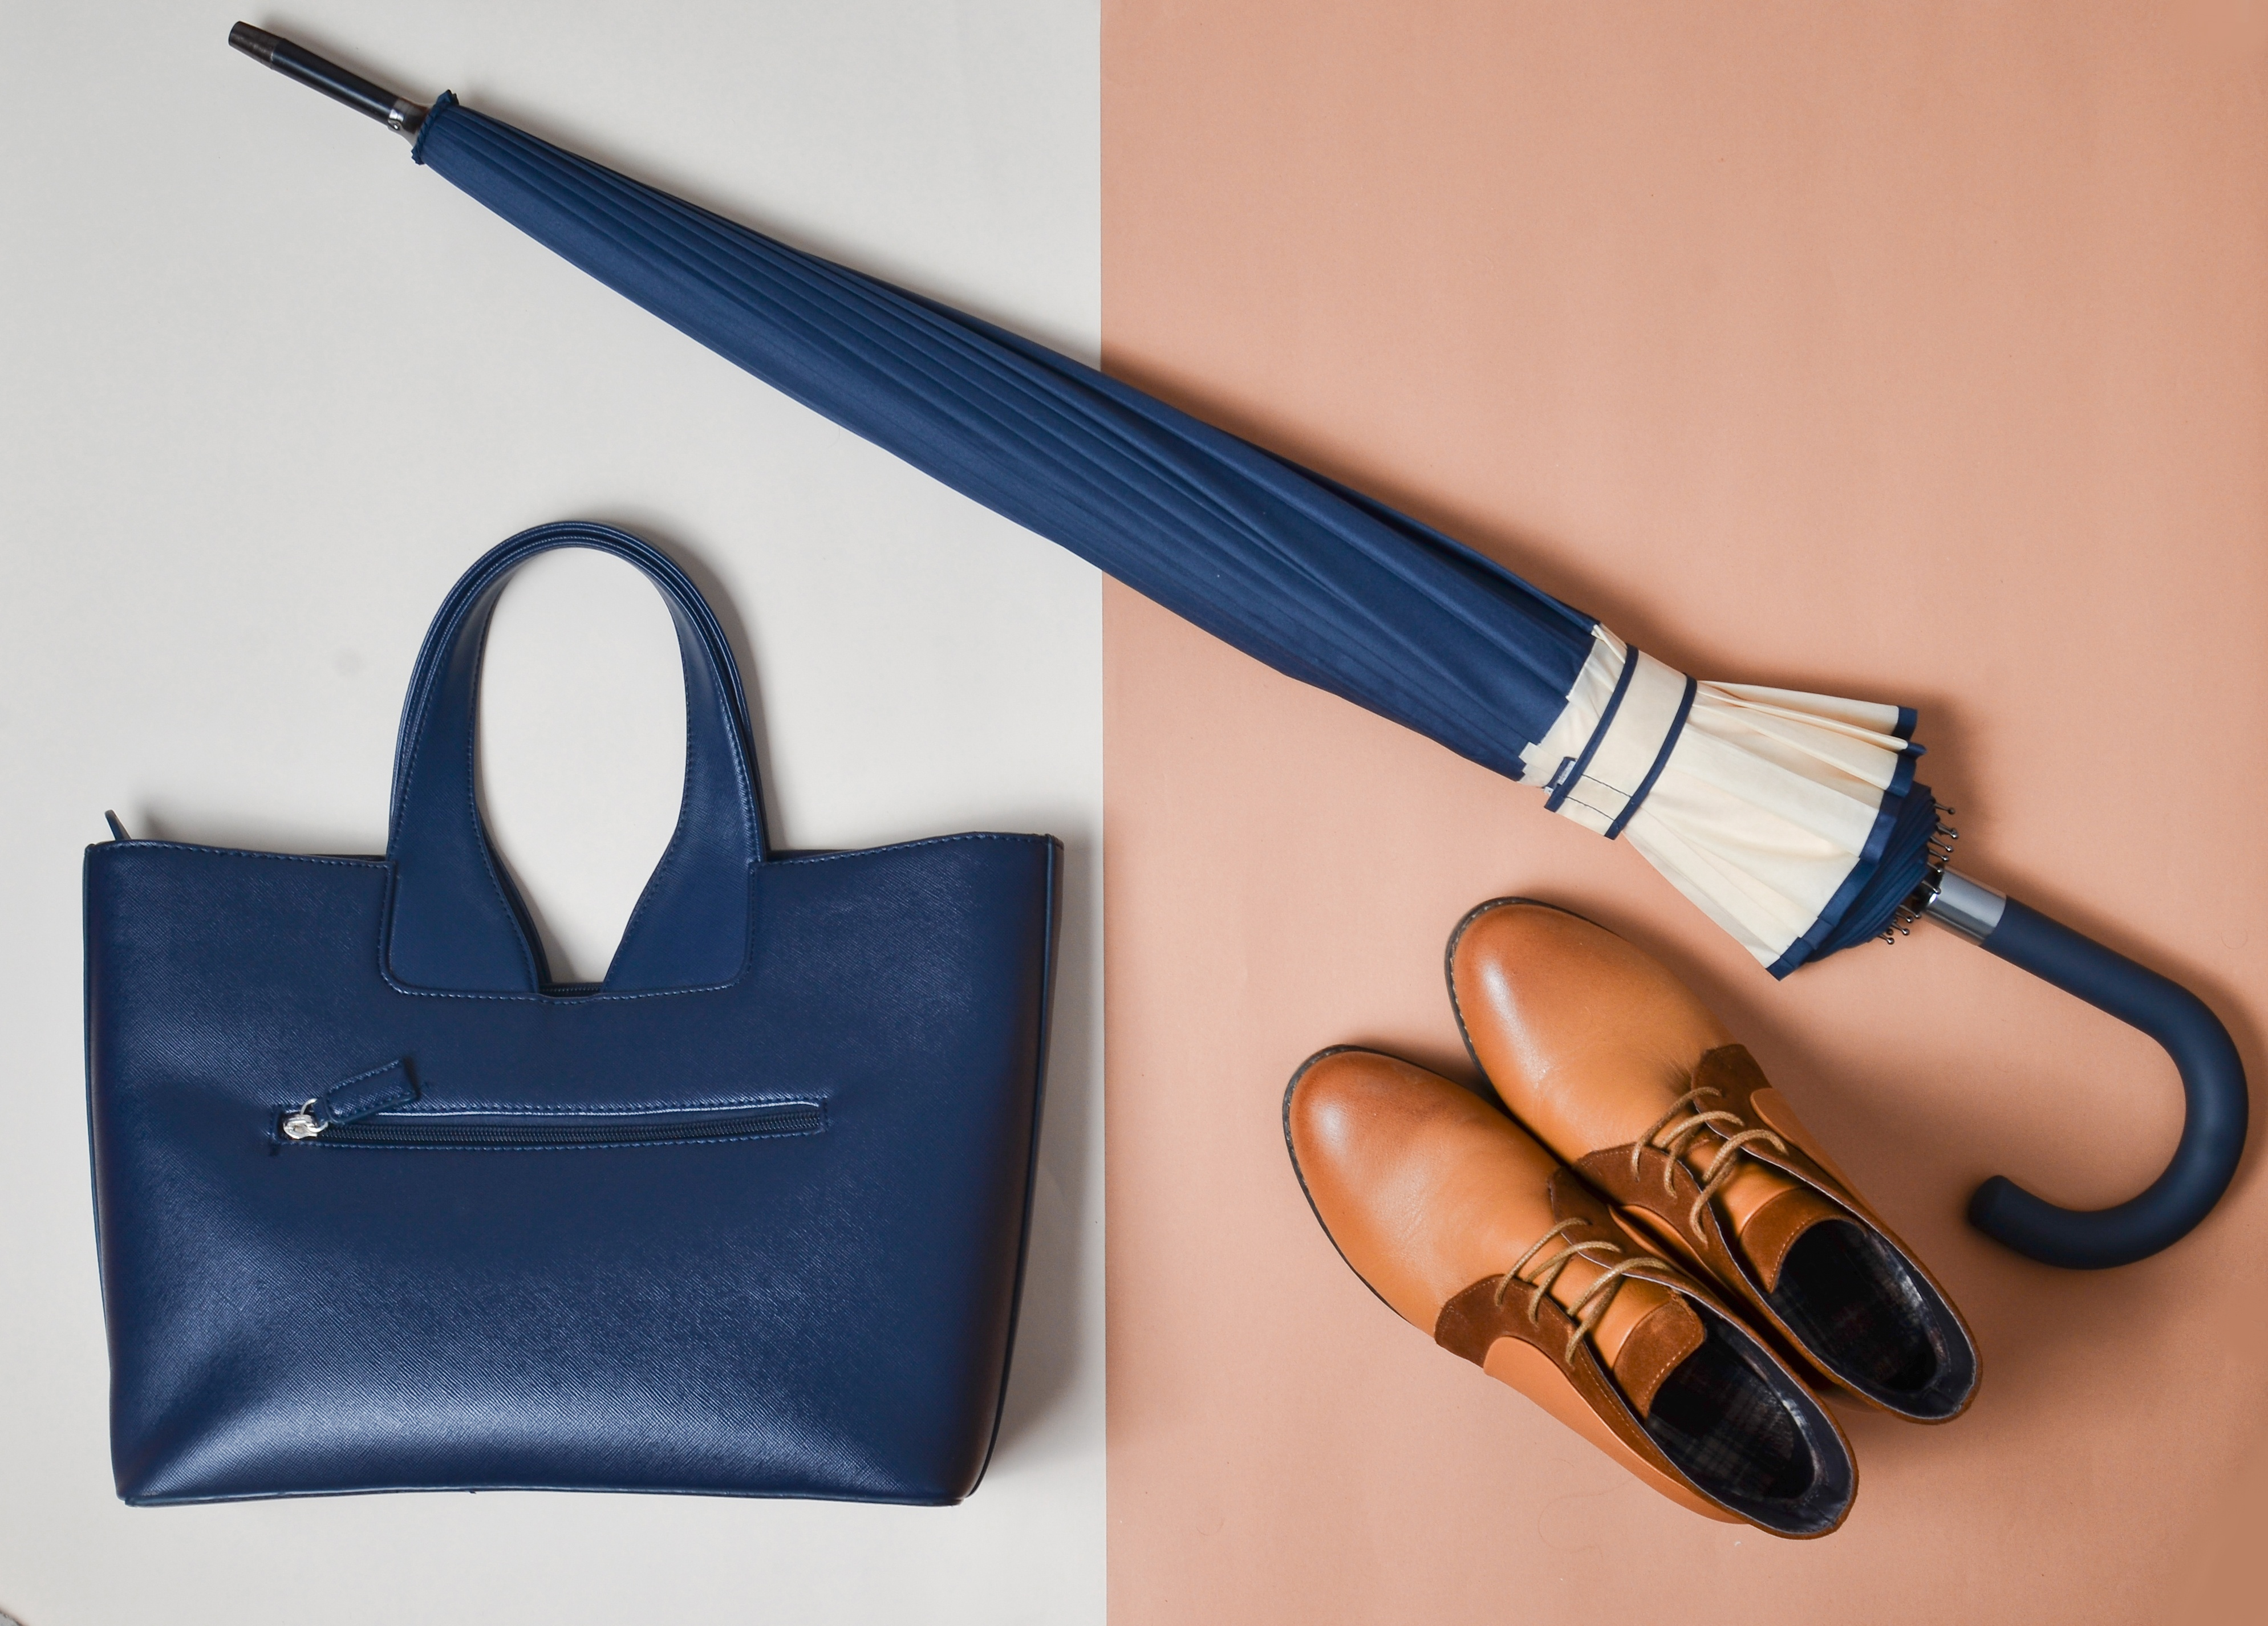 A flat overlay image of a blue bag and umbrella with brown leather boots